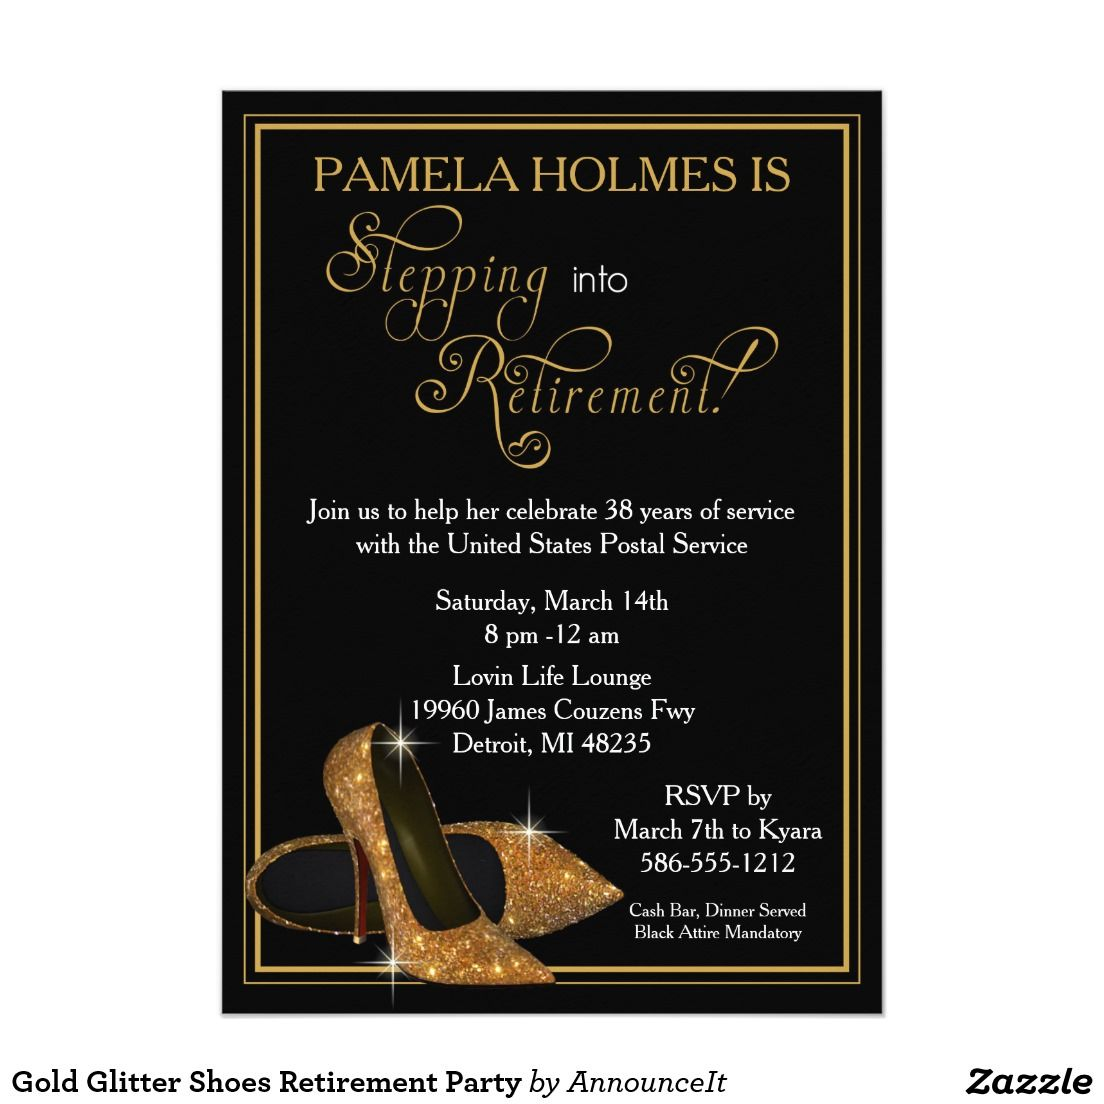 Gold Glitter Shoes Retirement Party Card  Gold Glitter Shoes